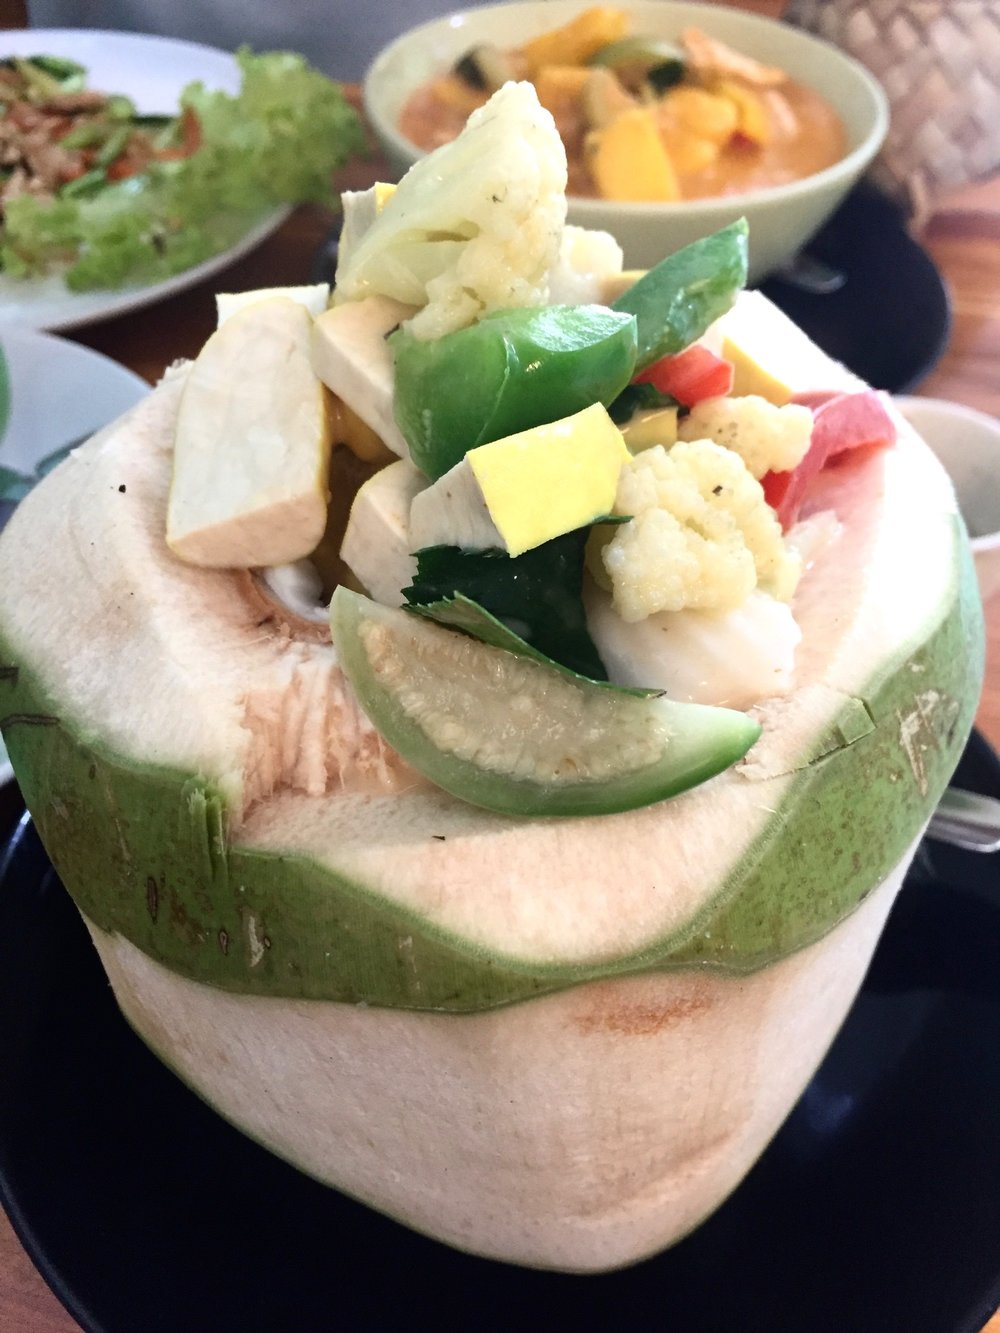 Coconuts on coconuts and in this case a delicious coconut curry inception! NOM NOM NOM.